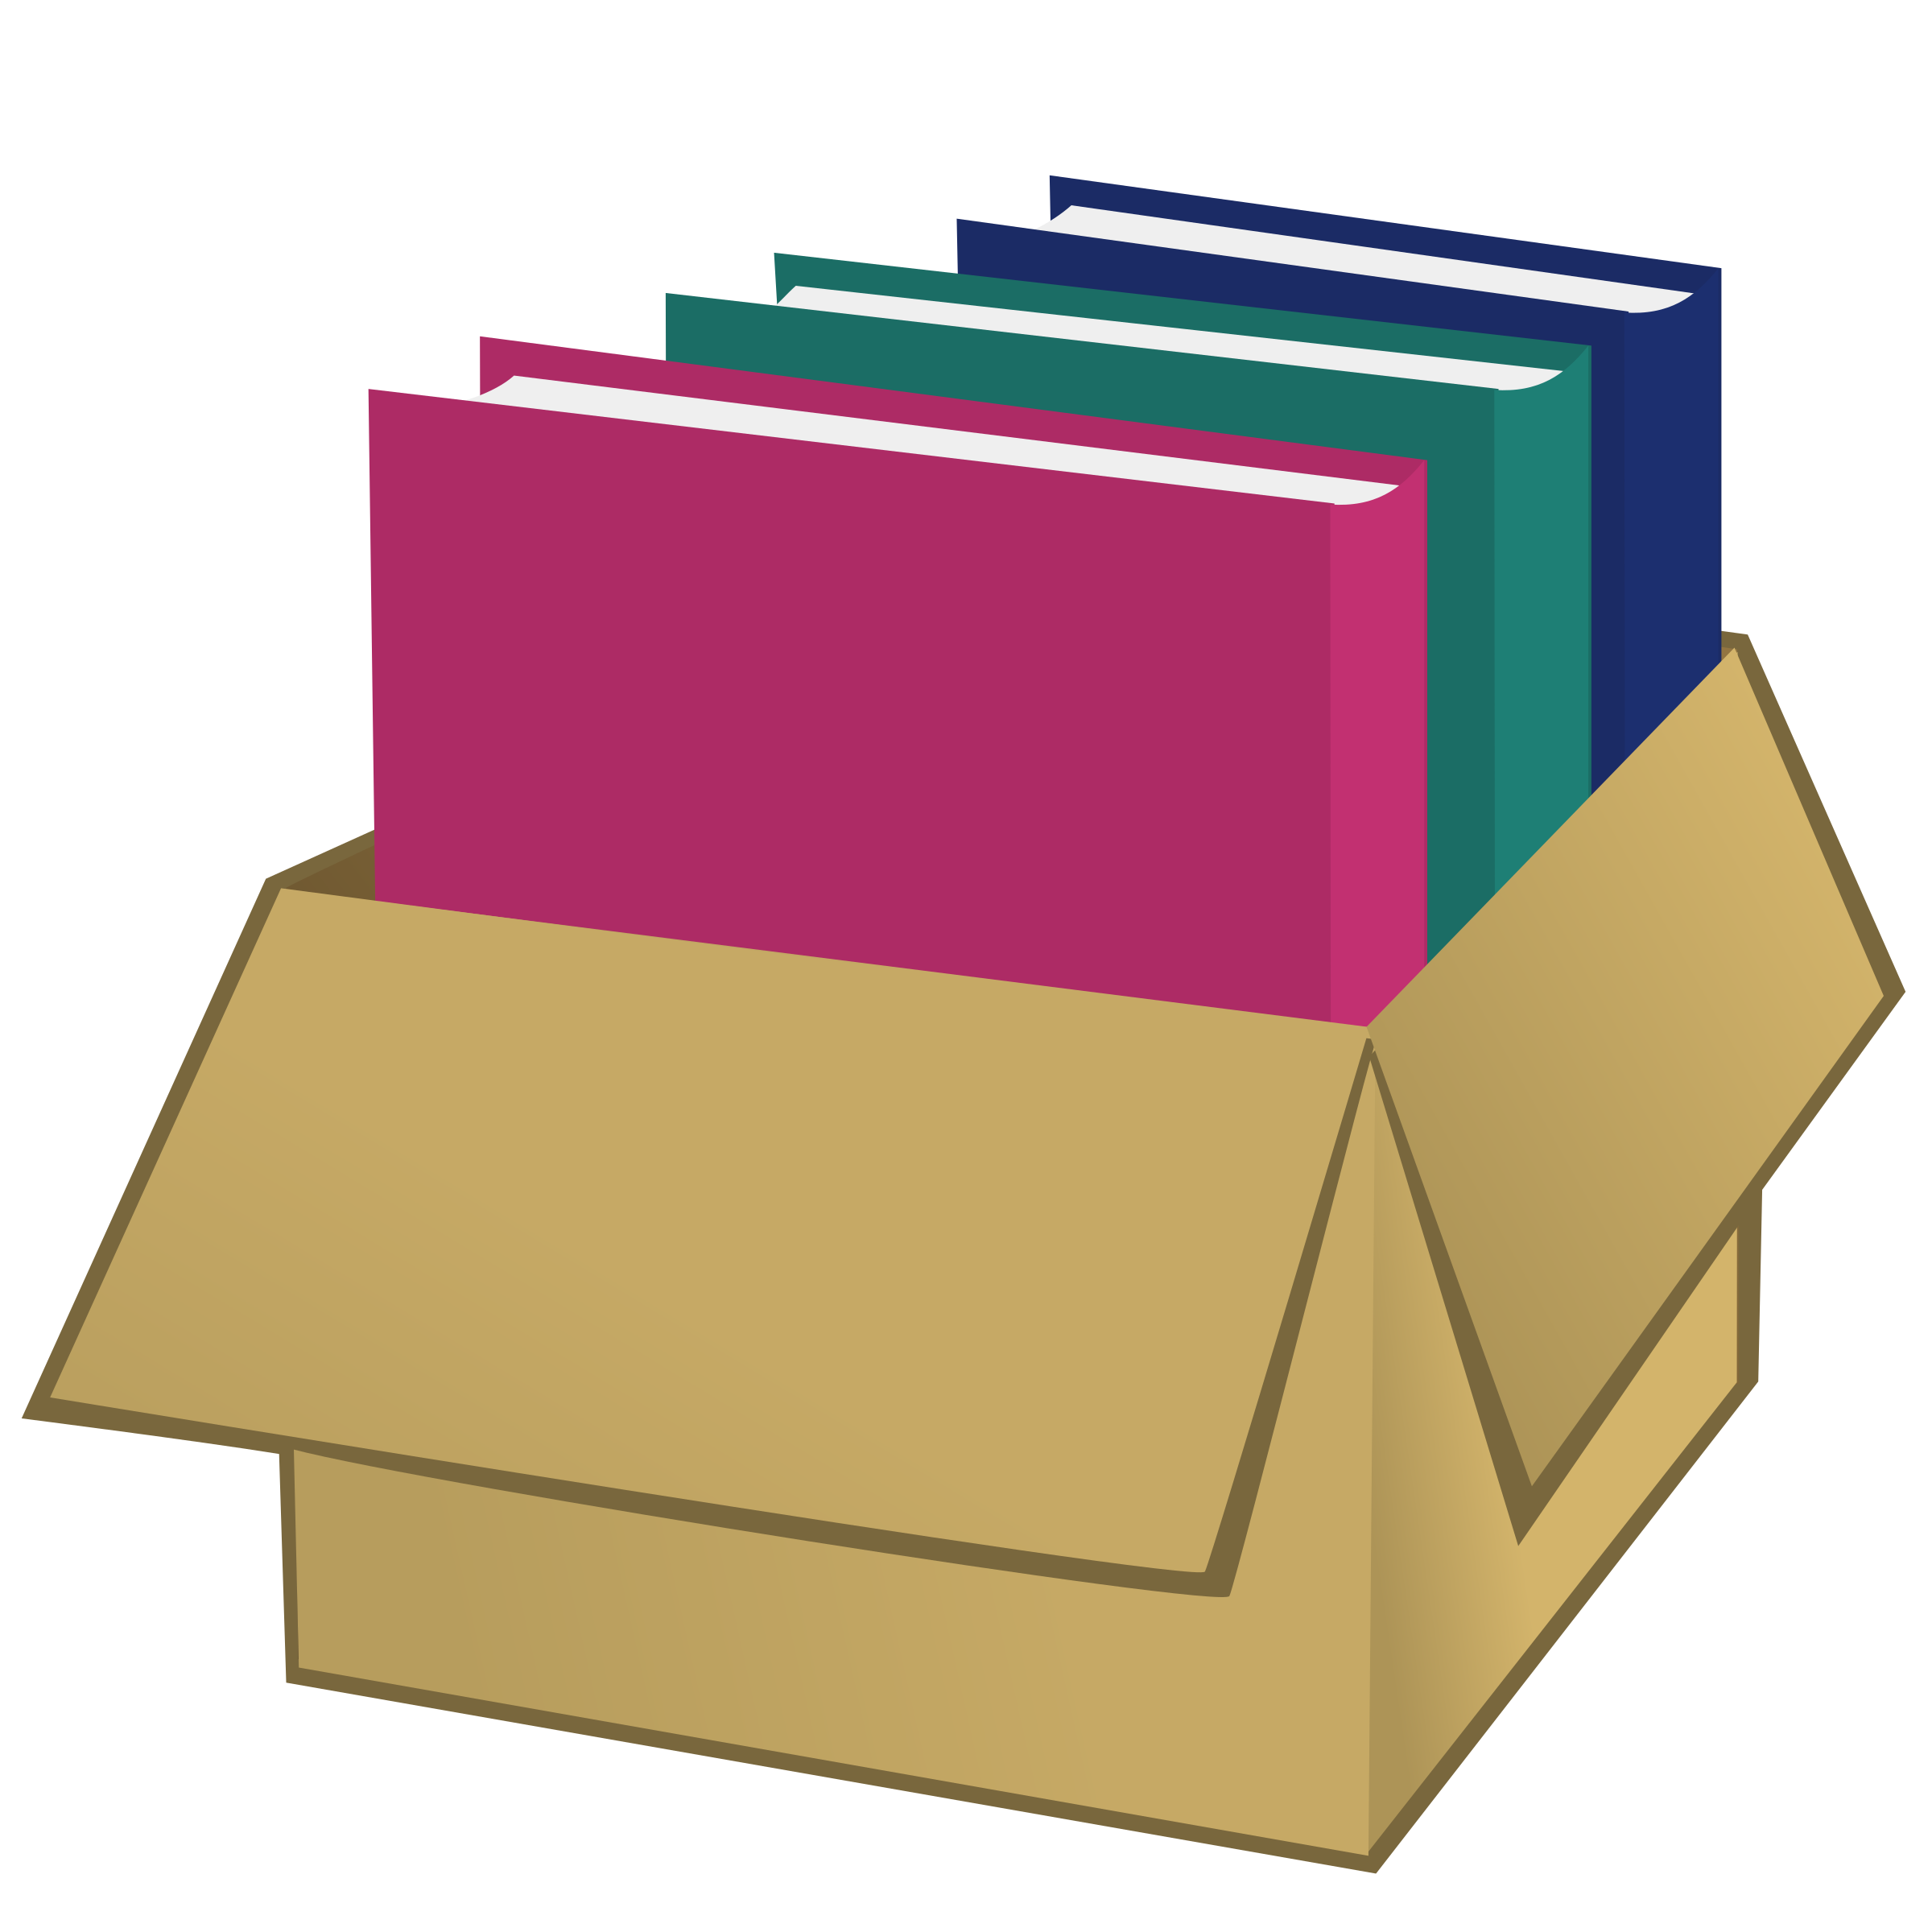 Folder clipart box book. With folders big image